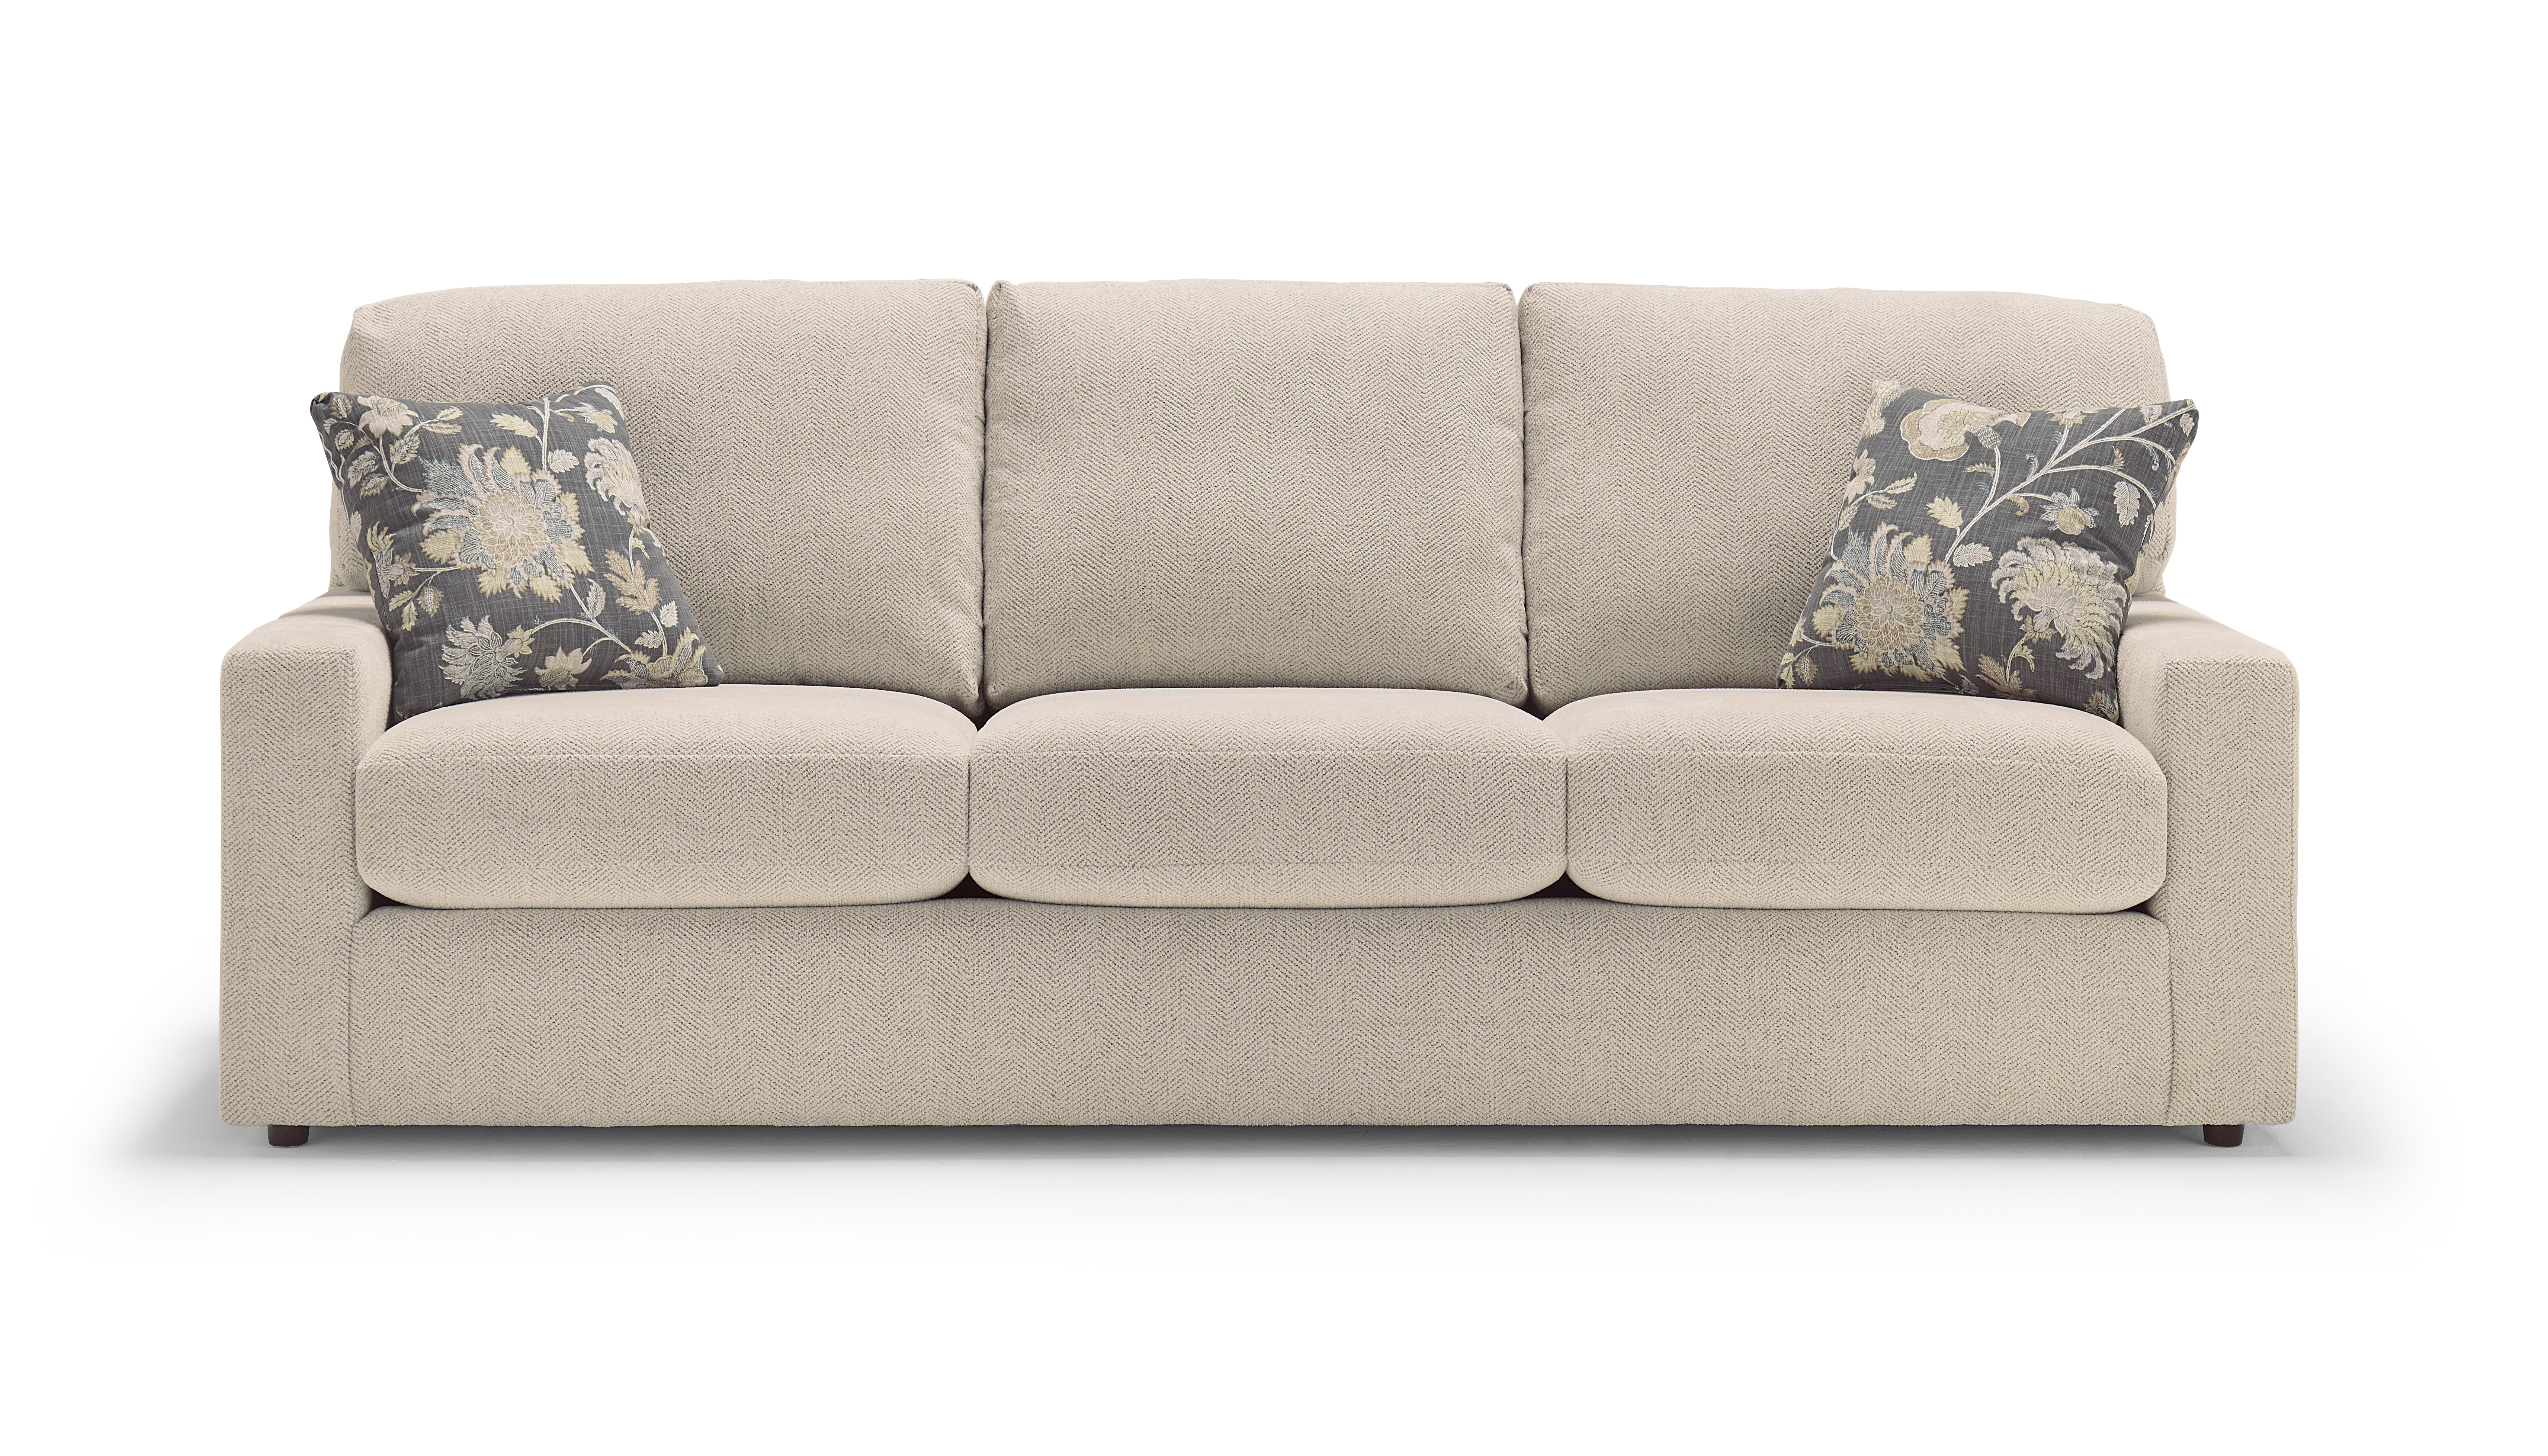 Dovely Sofa by Best Home Furnishings at Baer's Furniture